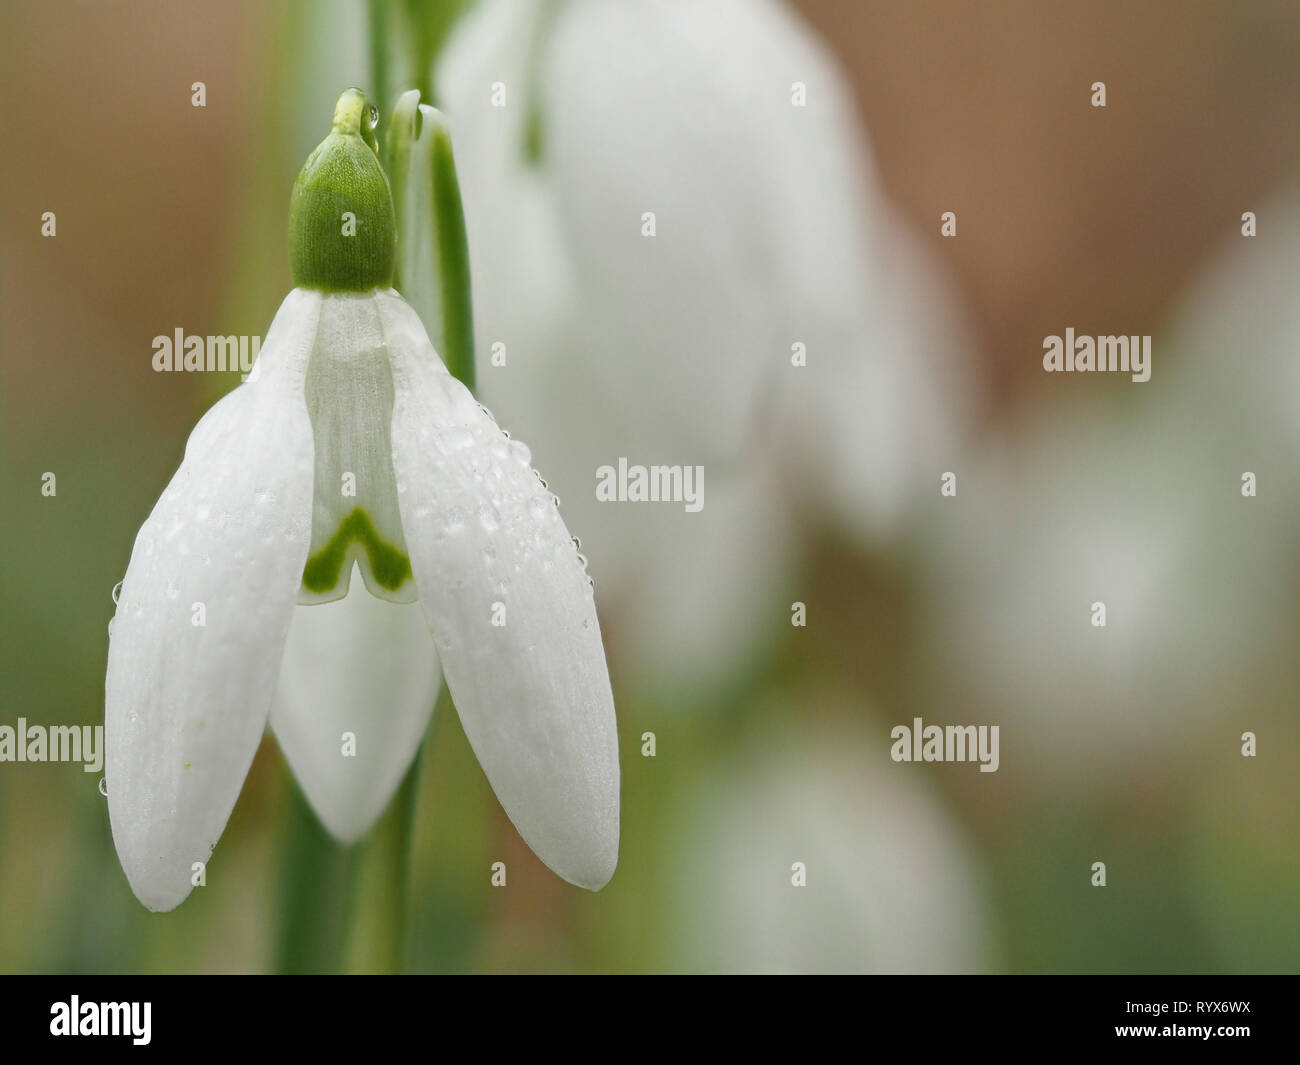 A Snowdrop photo called Water drops on a Snowdrop (Galanthus nivalis). This one is using Olympus in camera focus stacking - Stock Image